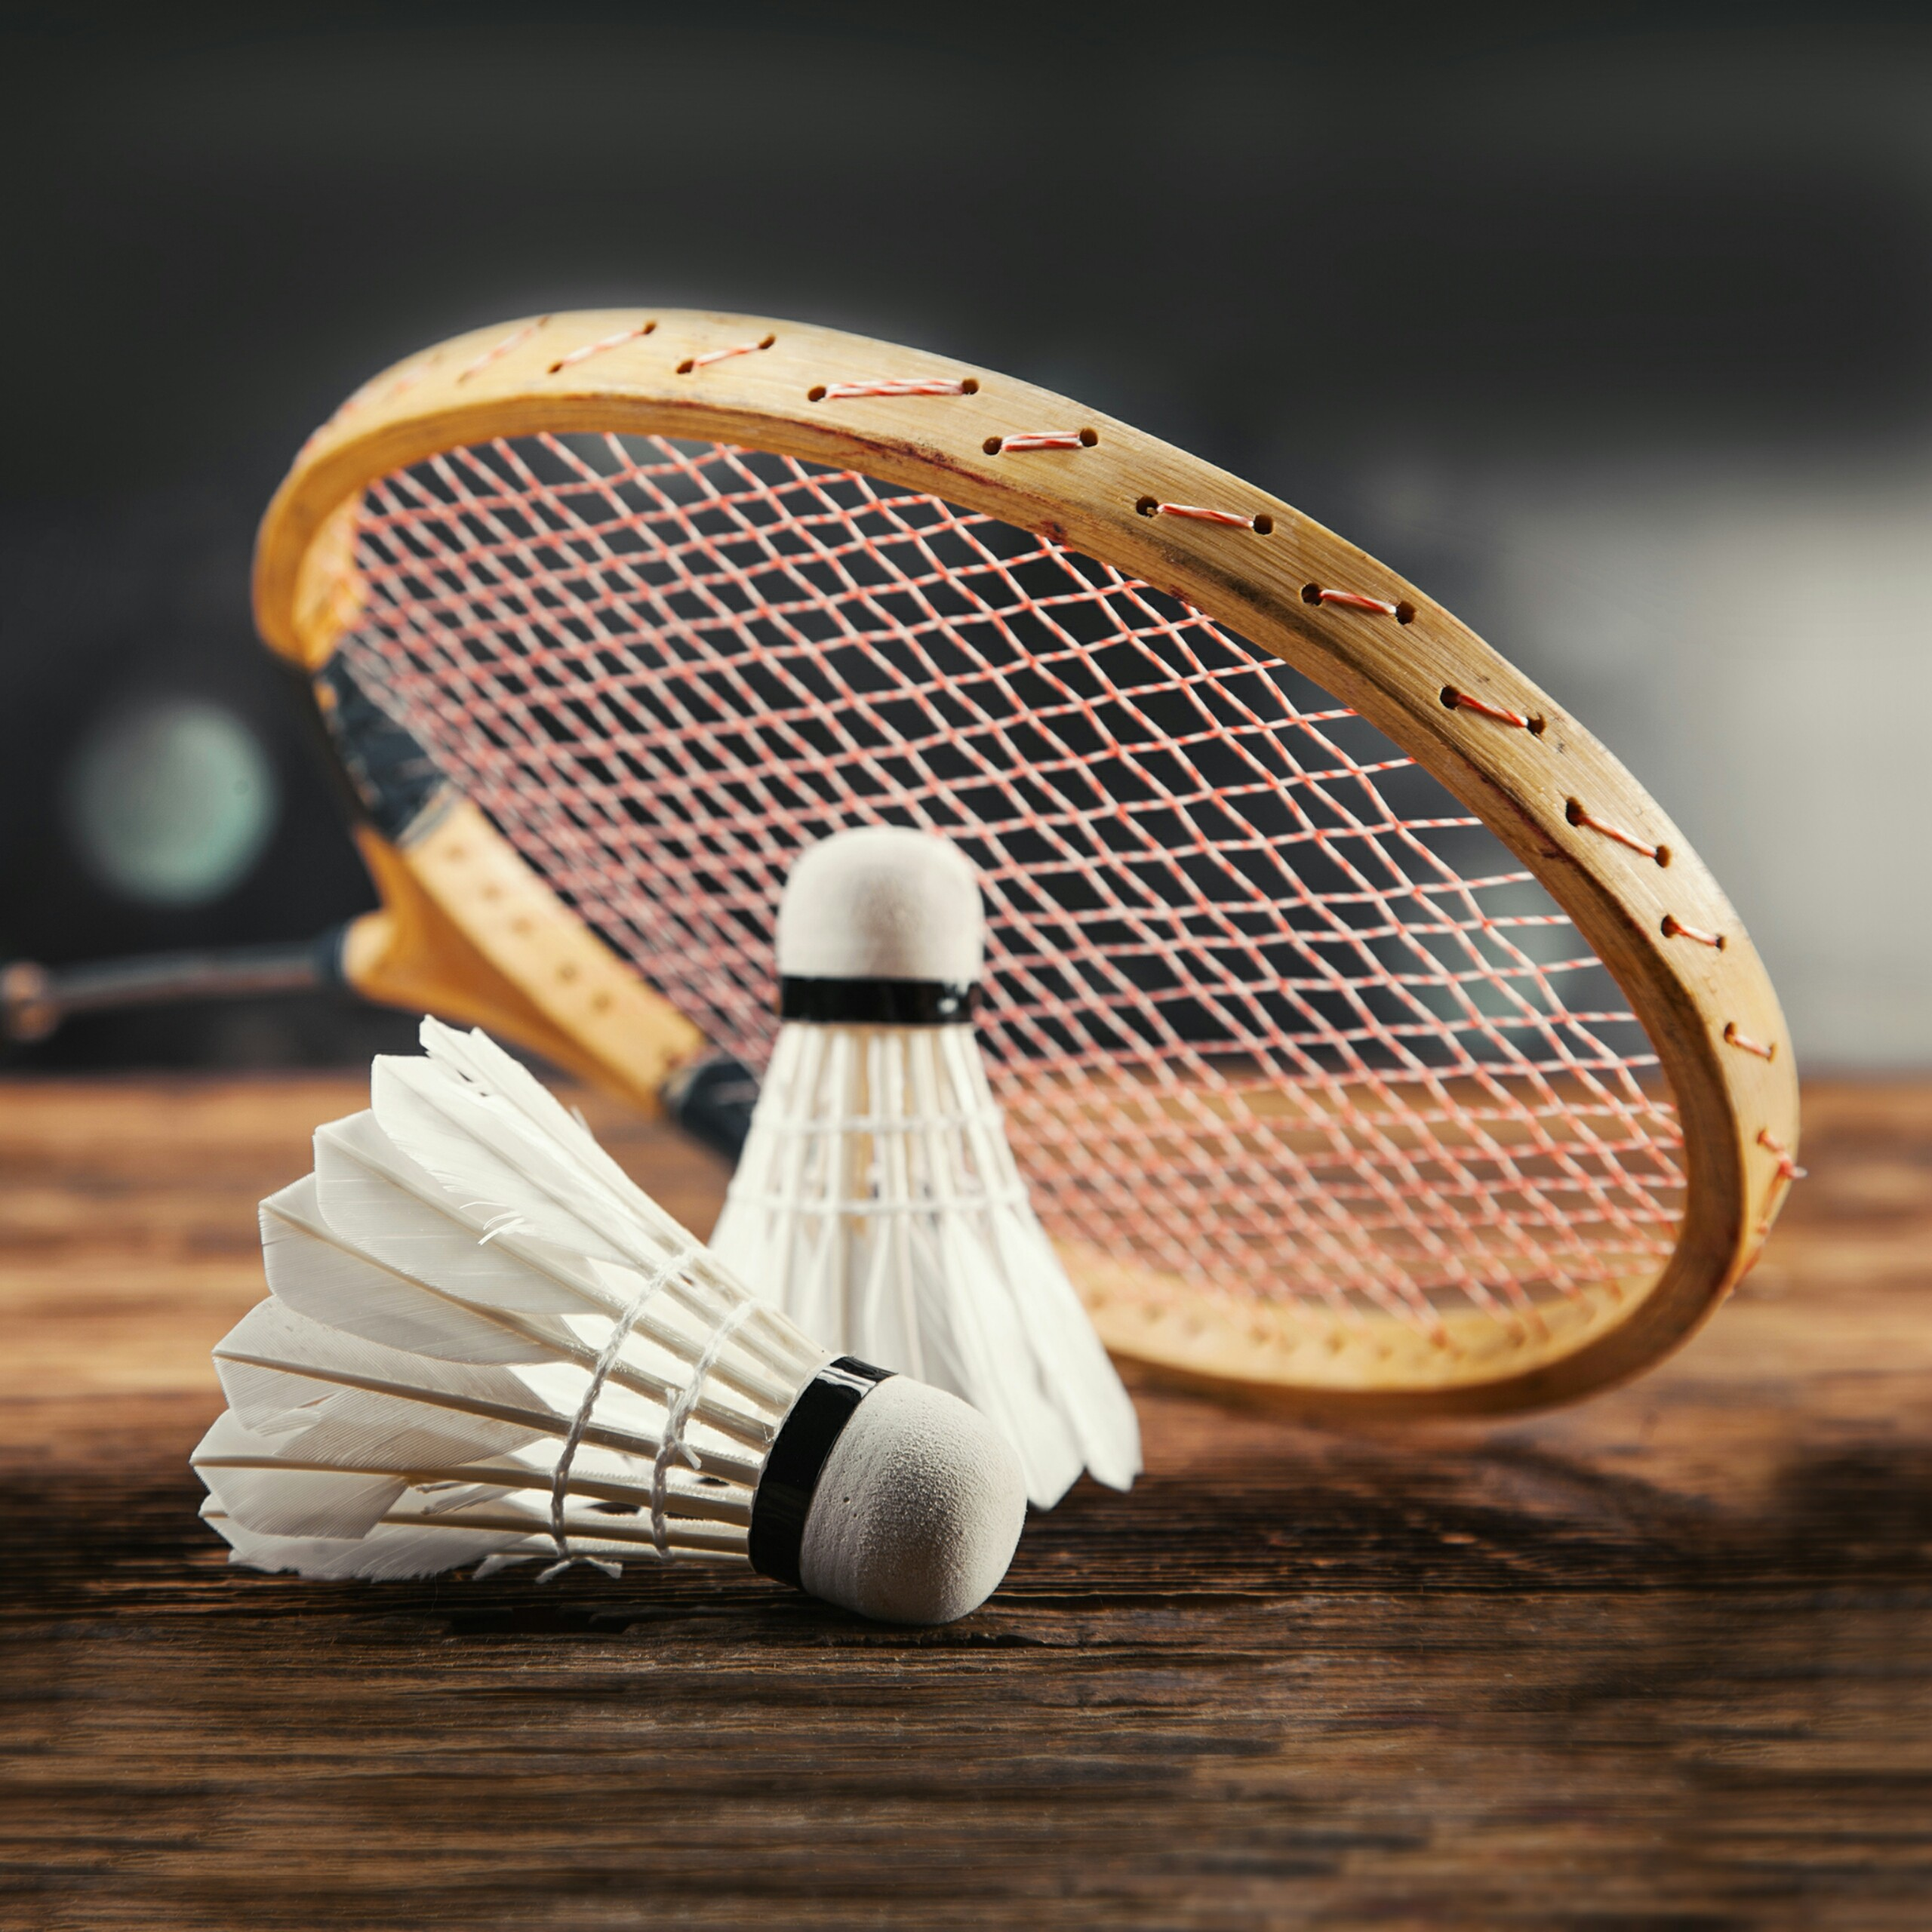 The 10 Best Badminton Sets to Buy in 2019 - BestSeekers 82ce4eec7d9eb